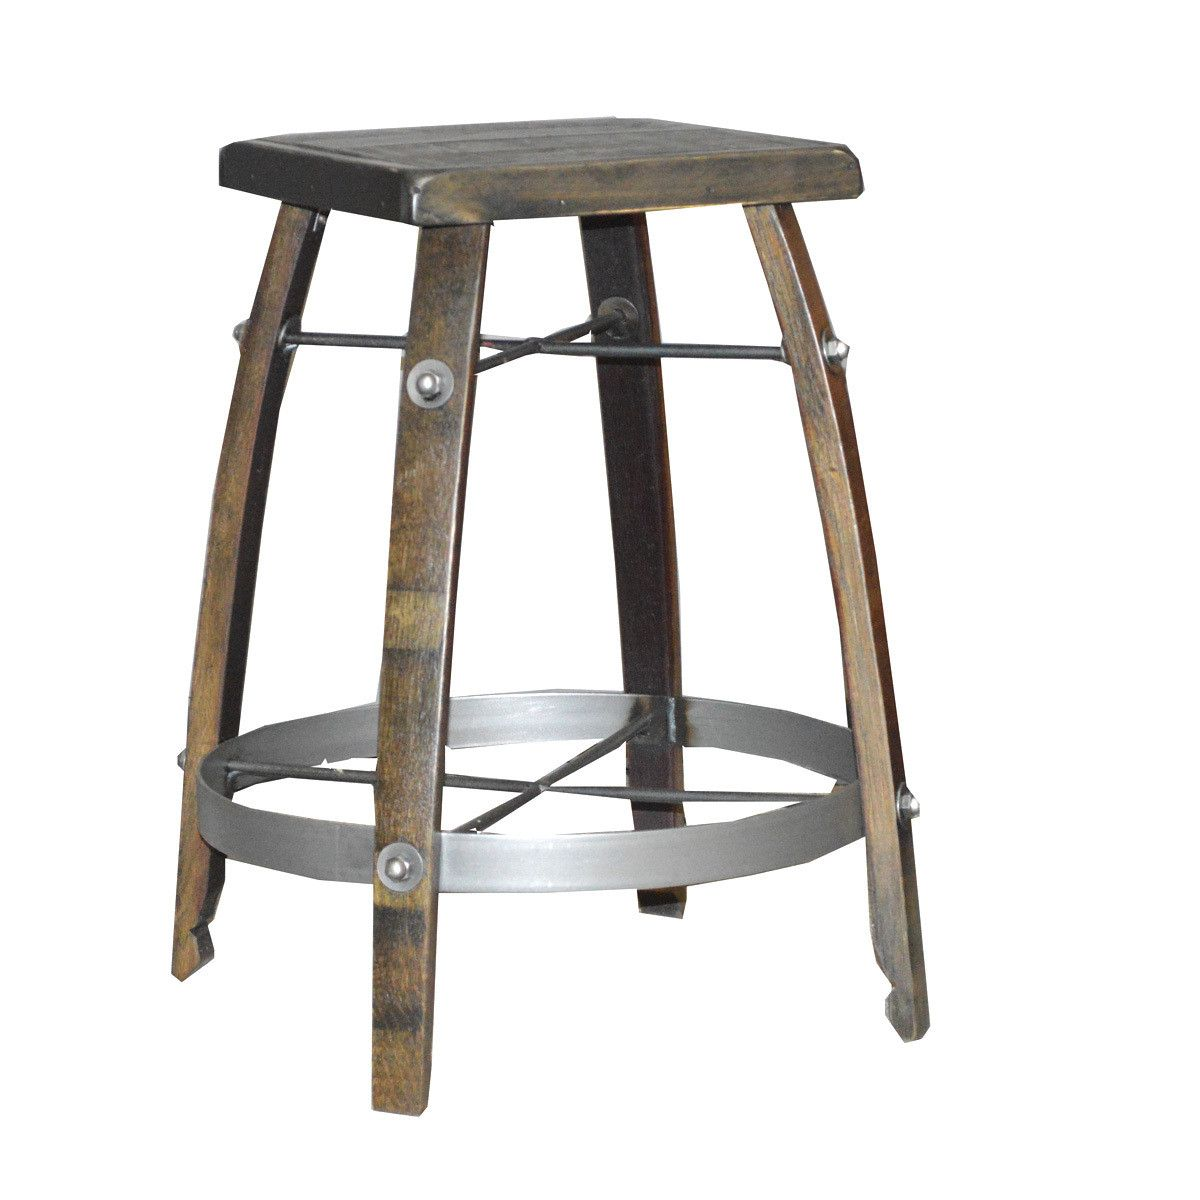 Stave Stool 28 Noir By 2 Day Designs Home Structure Decor Stool